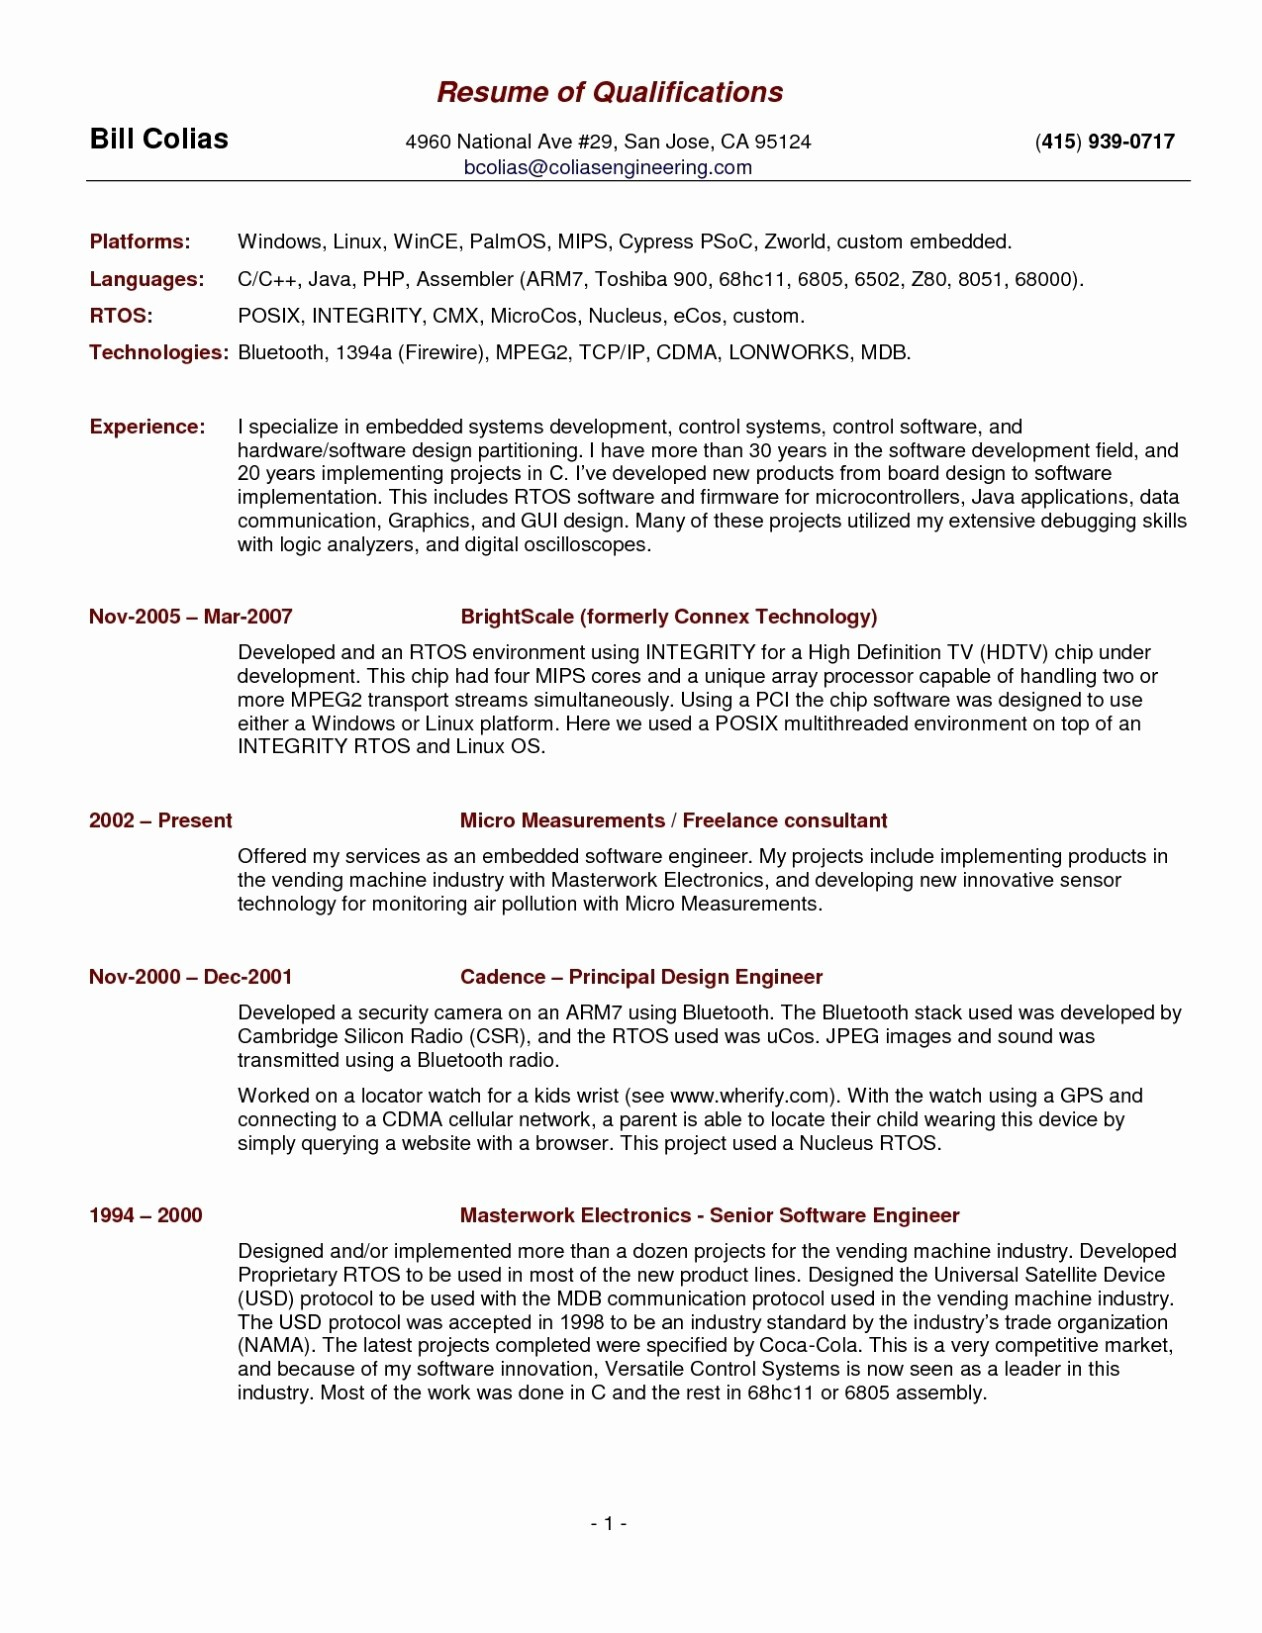 Front Desk Resume Template - 15 Awesome From the Desk Template Land Of Template